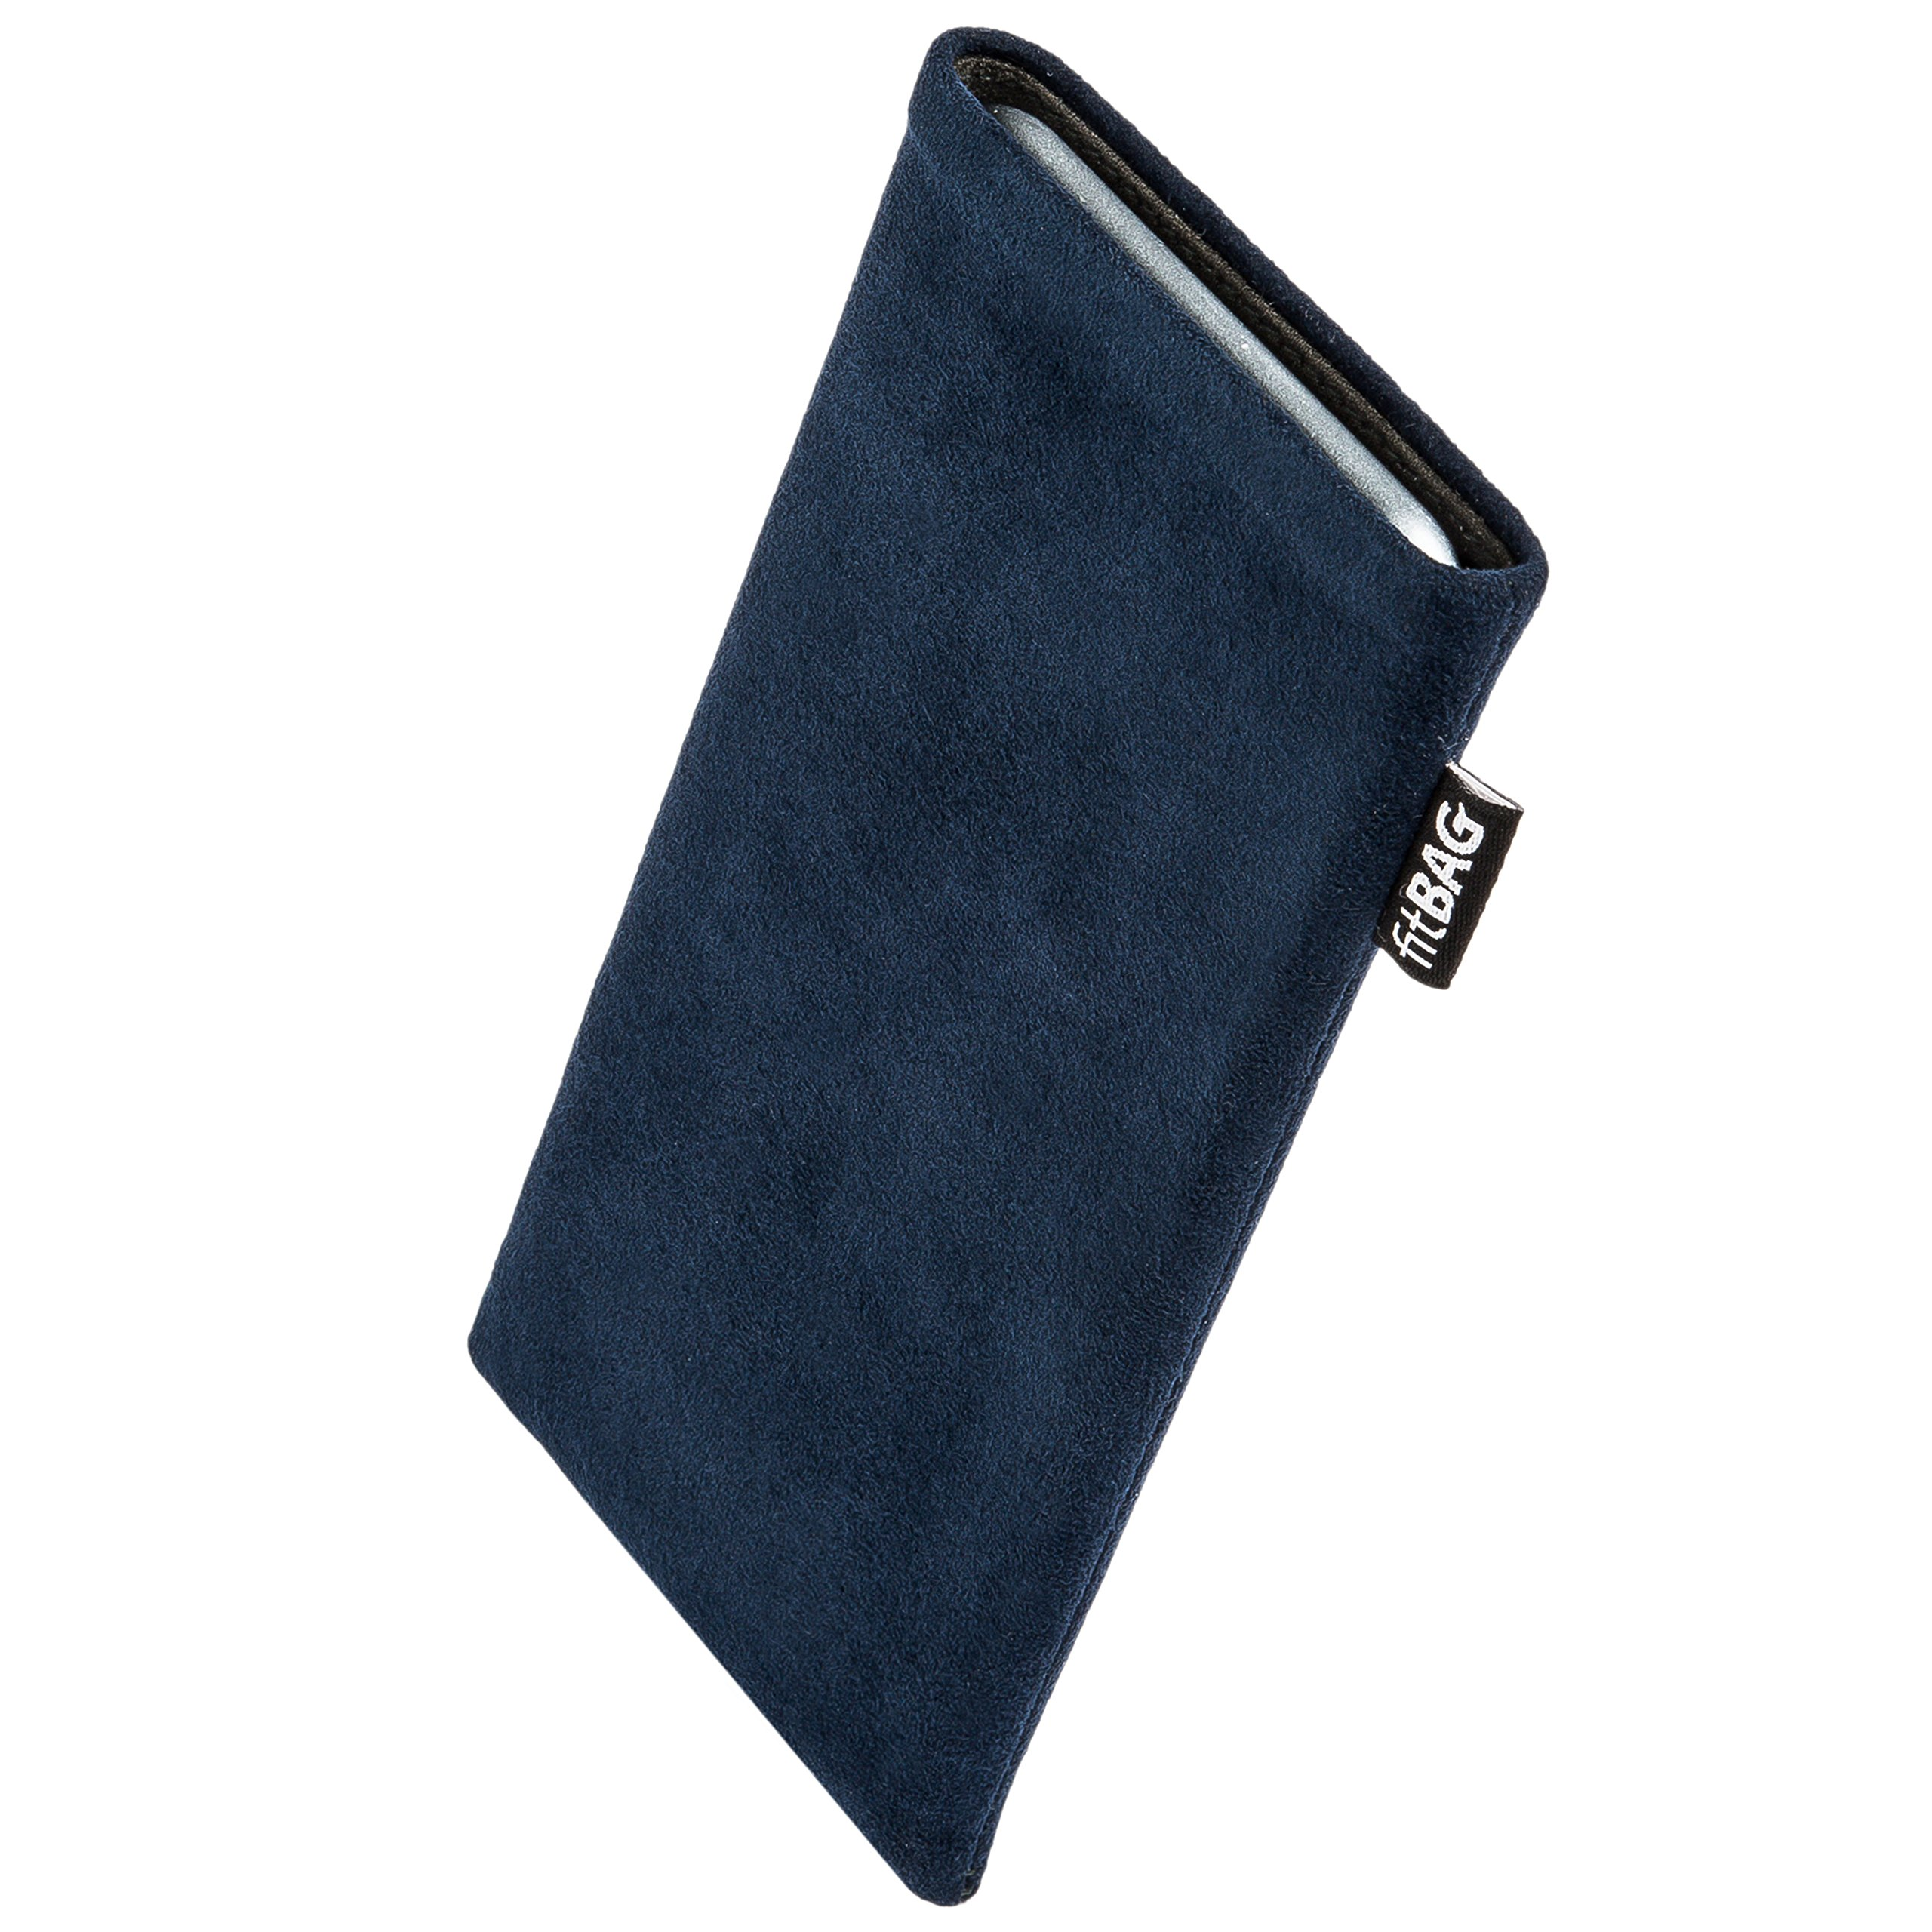 fitBAG Classic Blue Custom Tailored Sleeve for Samsung Galaxy S10+ / S10 Plus (SM-G975F) | Made in Germany | Genuine Alcantara Pouch case Cover with Microfibre Lining for Display Cleaning